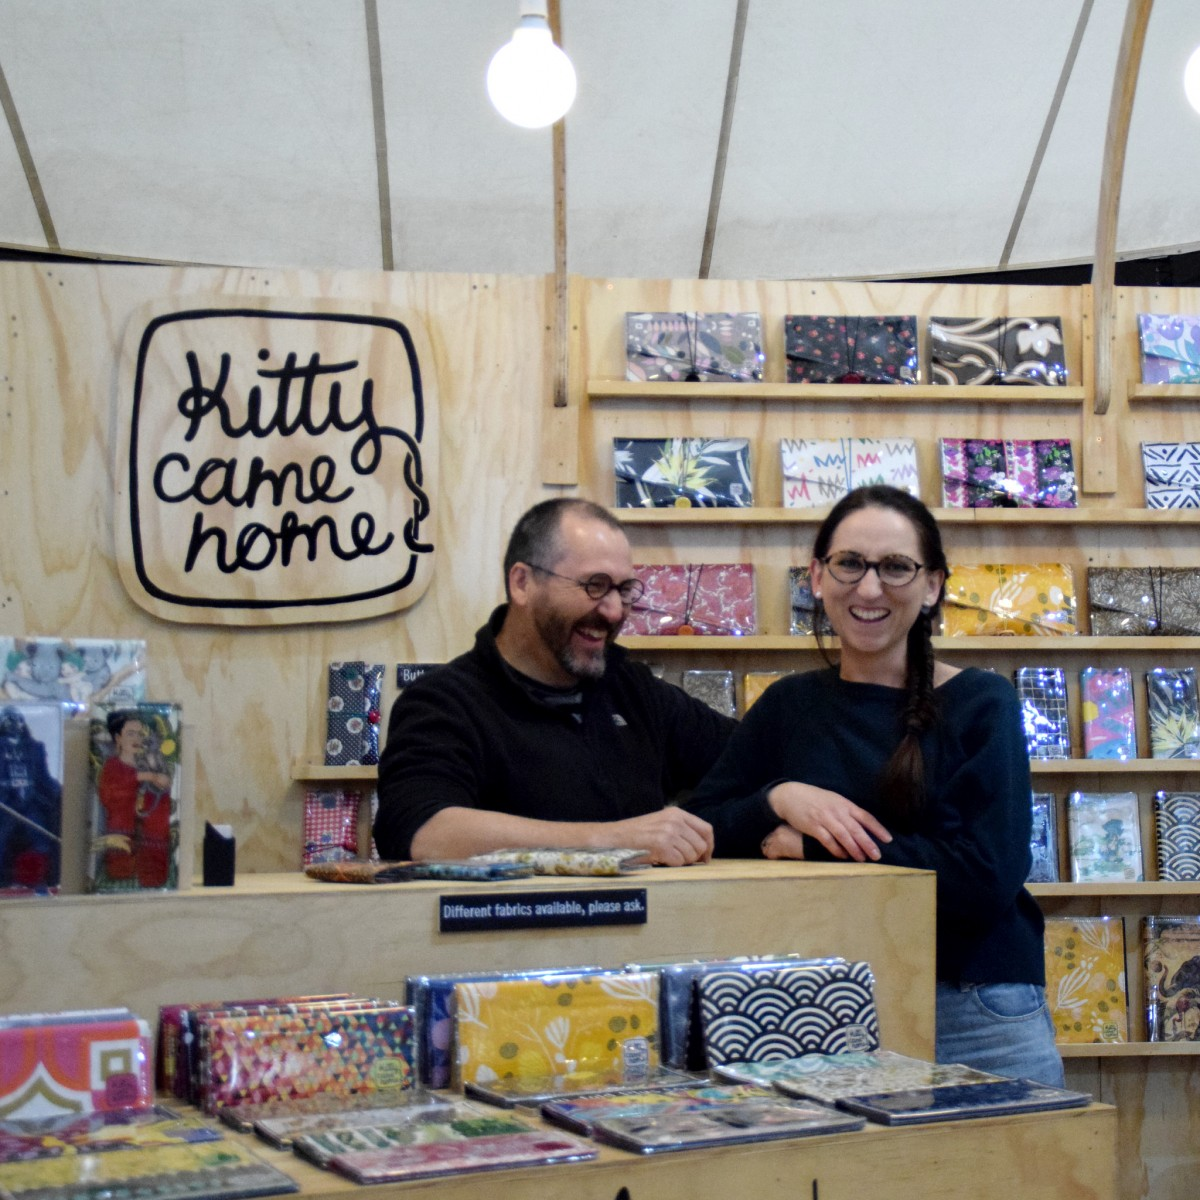 A photograph of a man and woman smiling, looking directly into the camera. In the background and foreground are collection of differently styled wallets and purses, In the left corner is a logo which reads' Kitty come home'